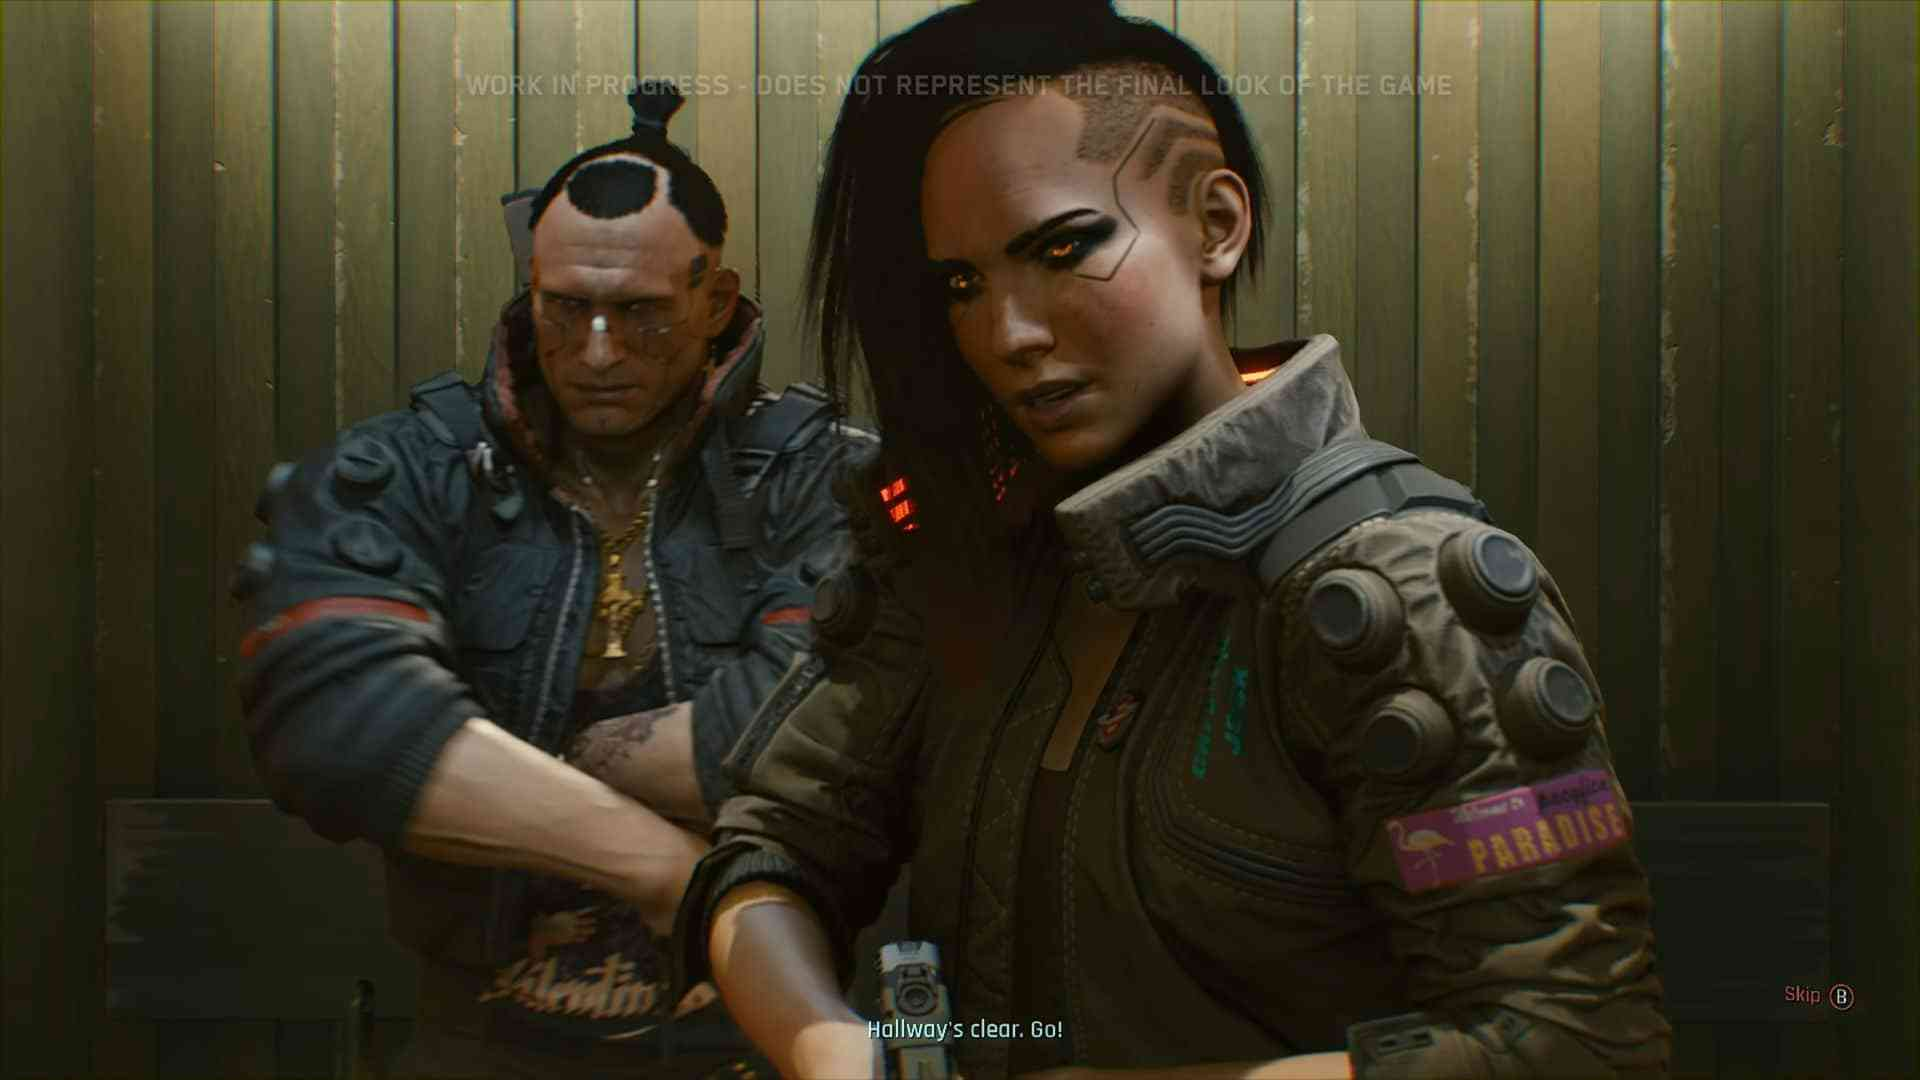 Cyberpunk 2077 Inspired by Vampire: The Masquerade and Deus Ex